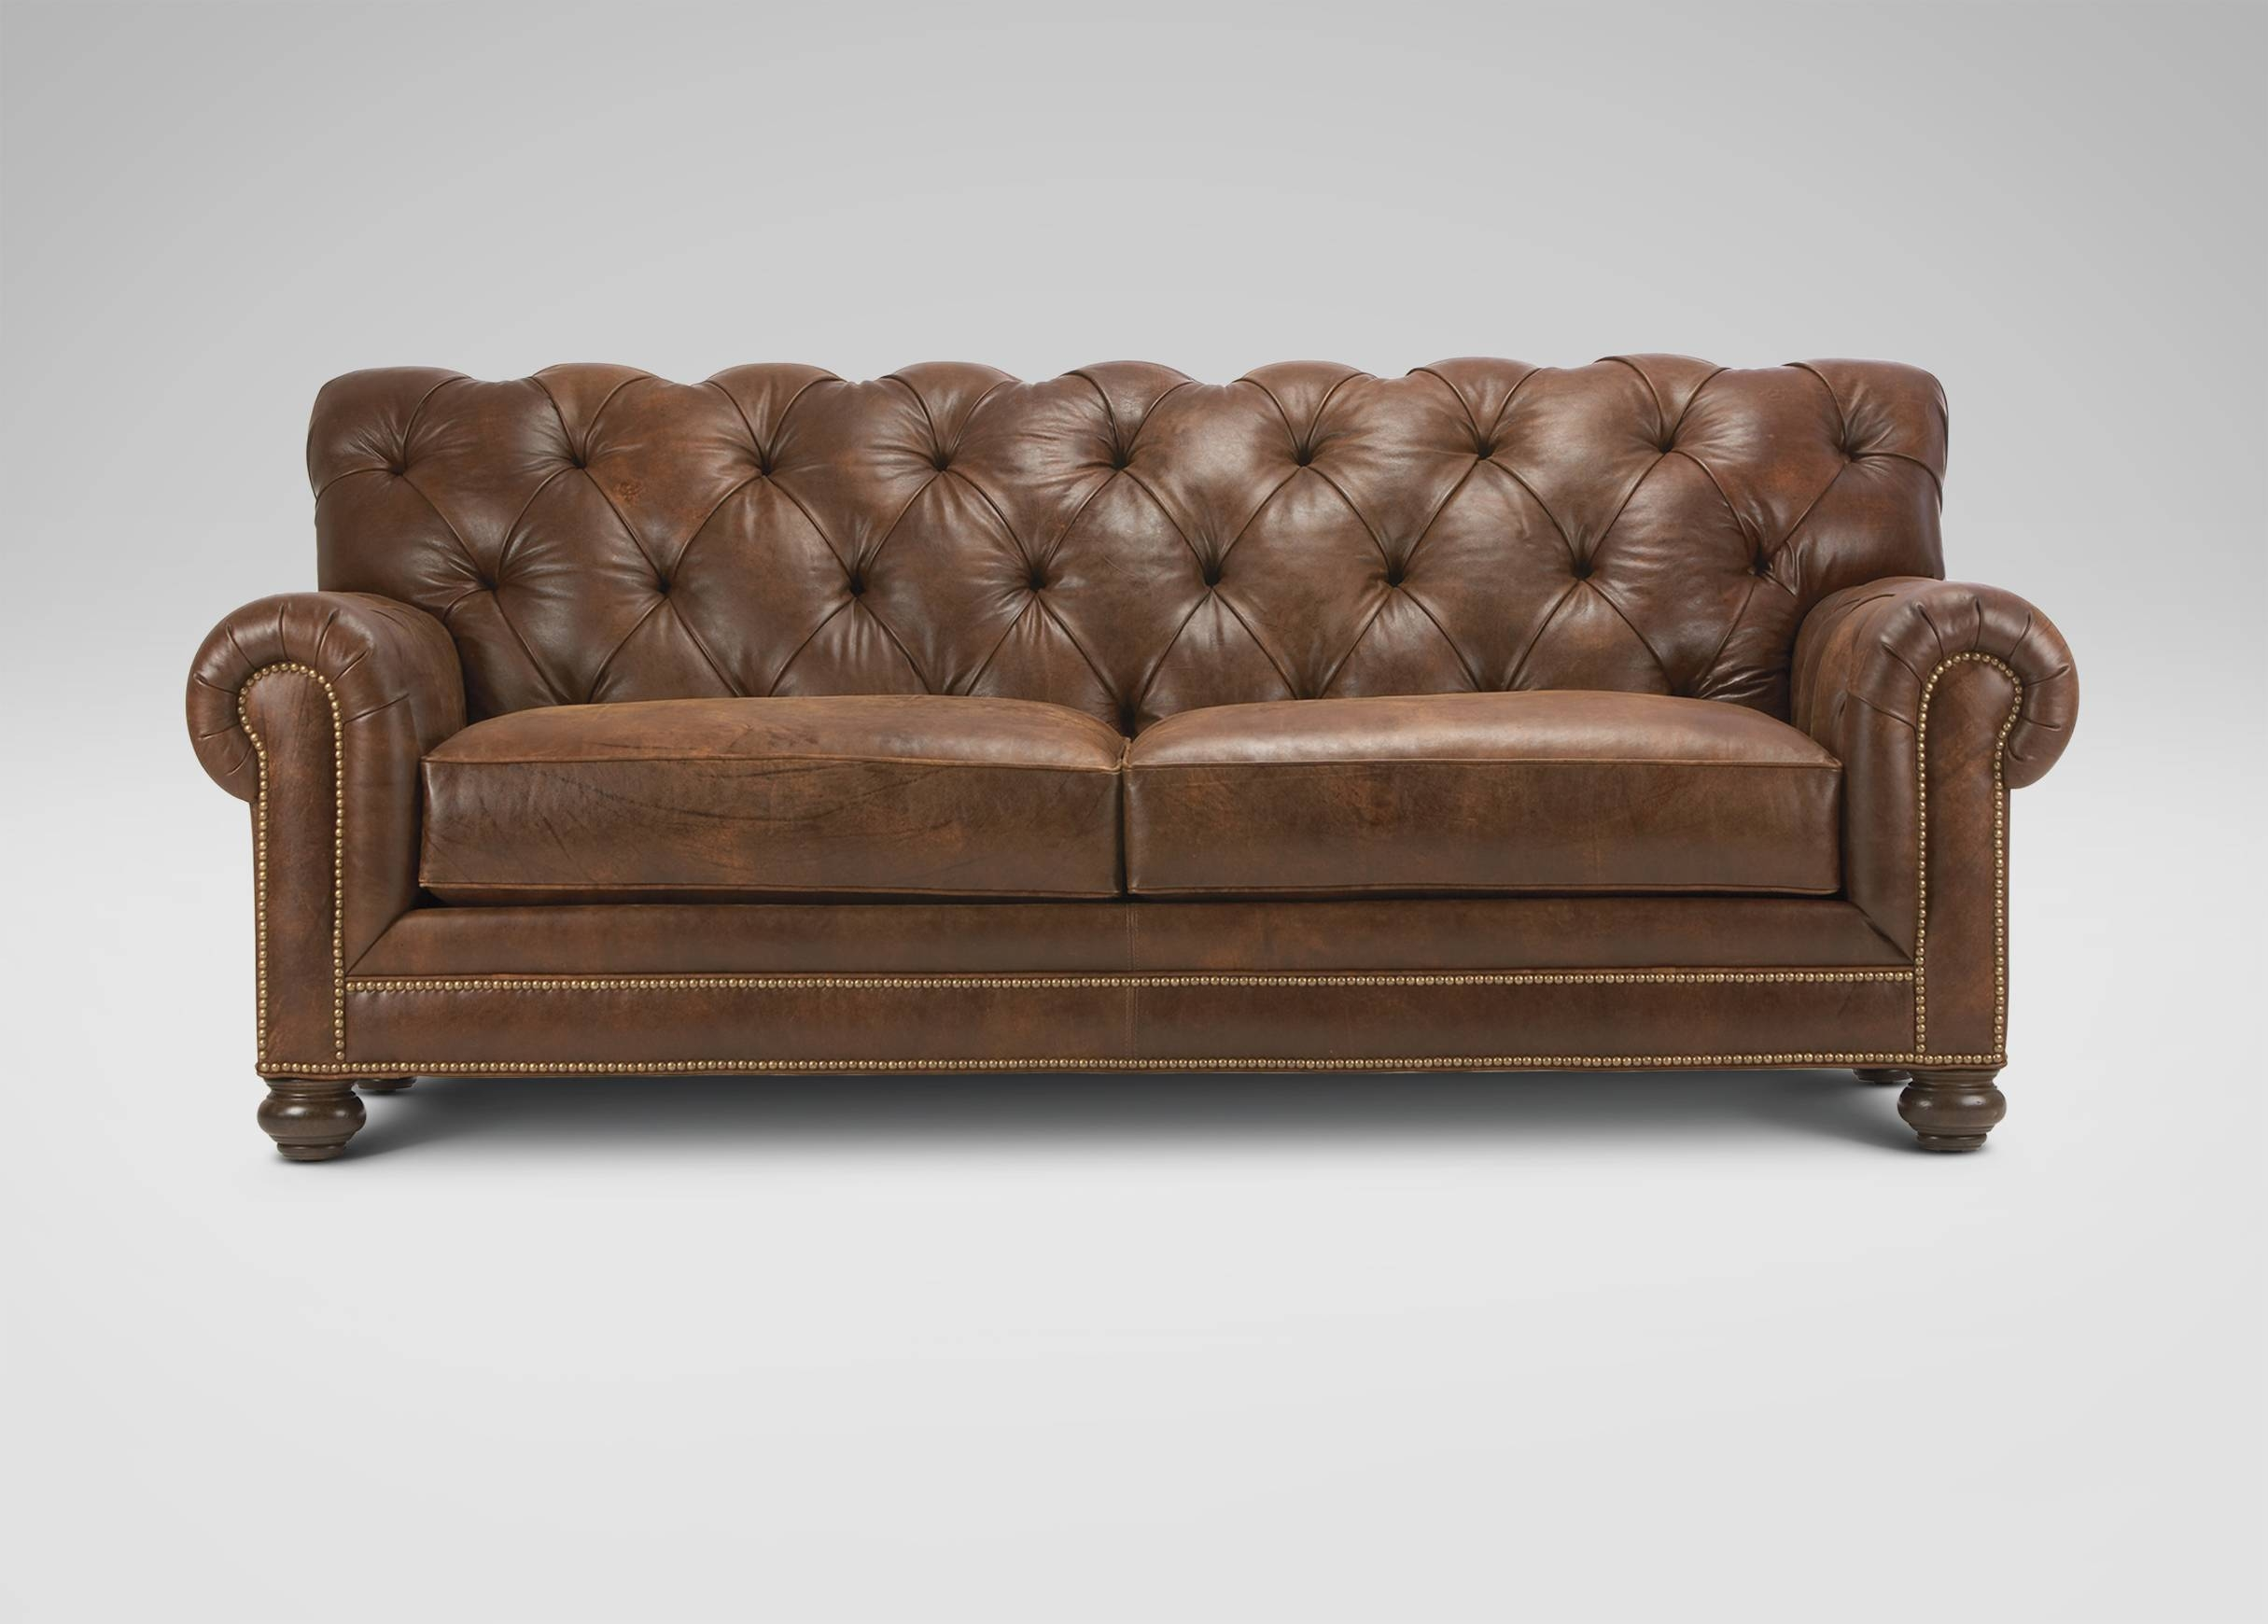 Chadwick Leather Sofa | Sofas & Loveseats pertaining to Ethan Allen Chesterfield Sofas (Image 2 of 15)